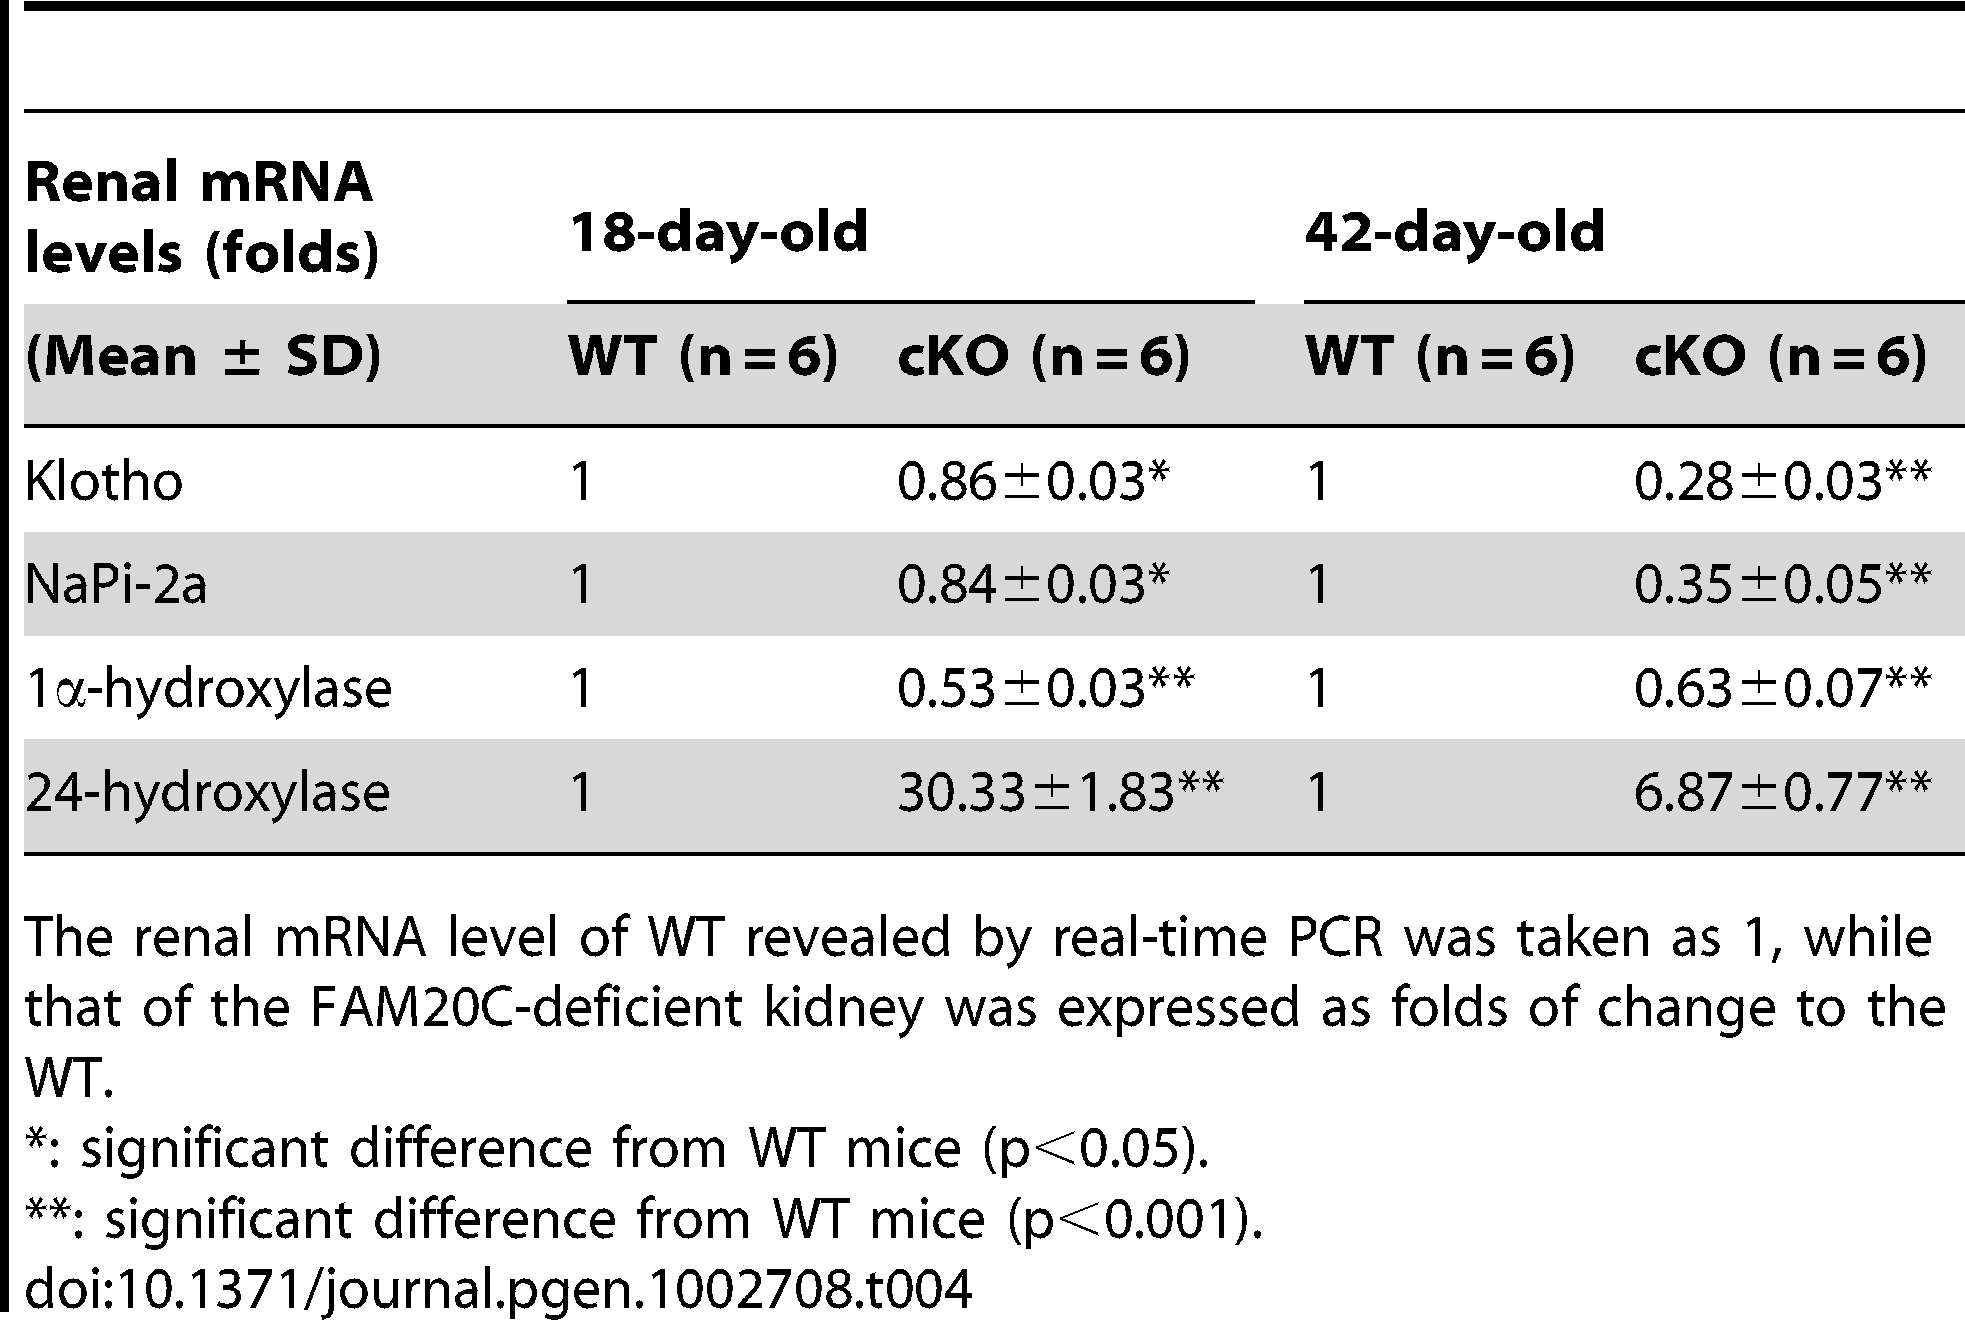 Renal mRNA levels of Klotho, NaPi-2a, 1α-hydroxylase, and 24-hydroxylase in the 18-day-old and 42-day-old WT and <i>Fam20c</i>-cKO mice.